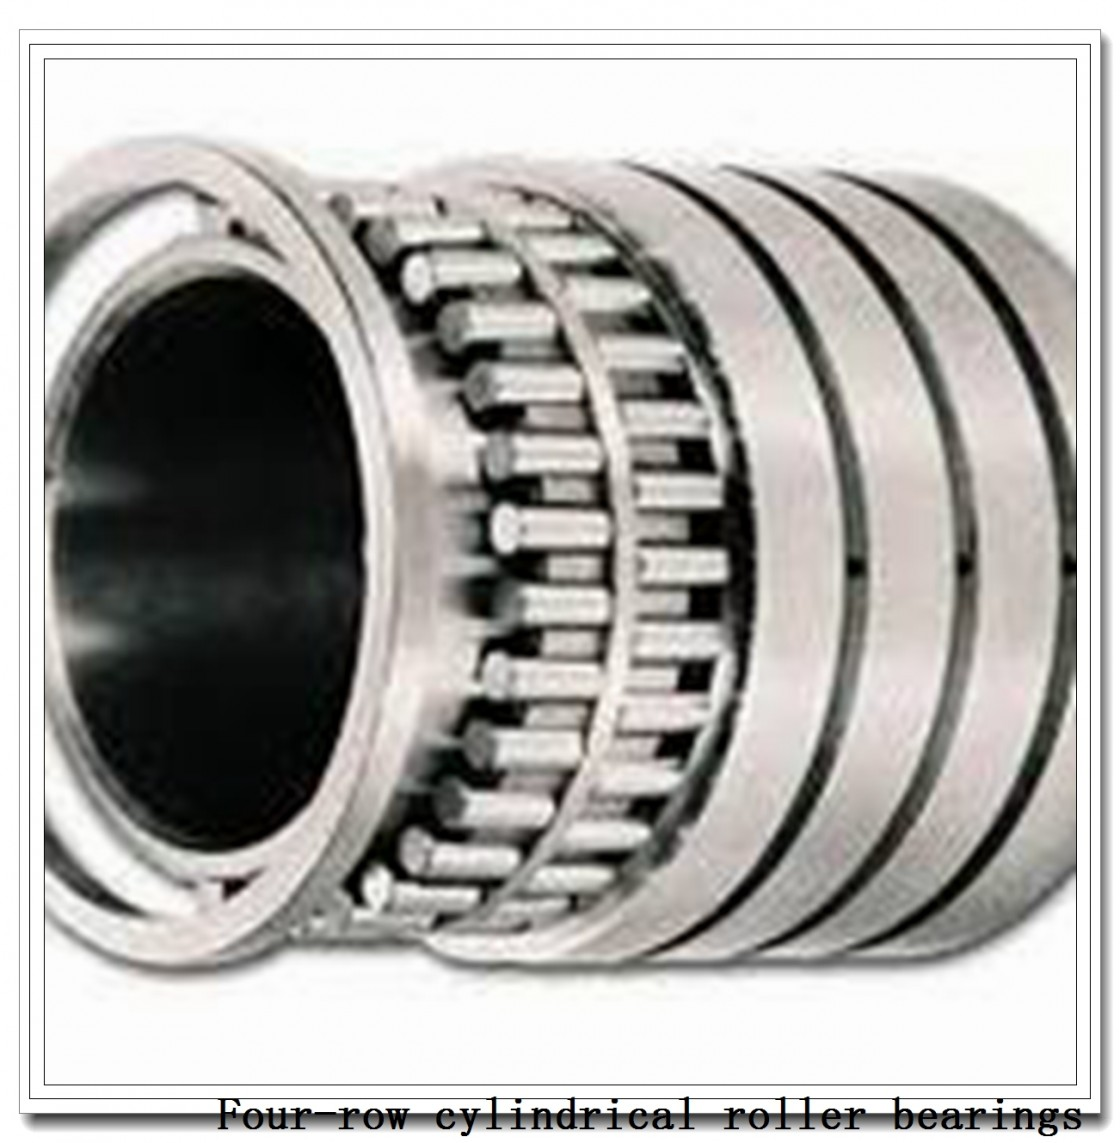 FCDP96138460/YA6 Four row cylindrical roller bearings